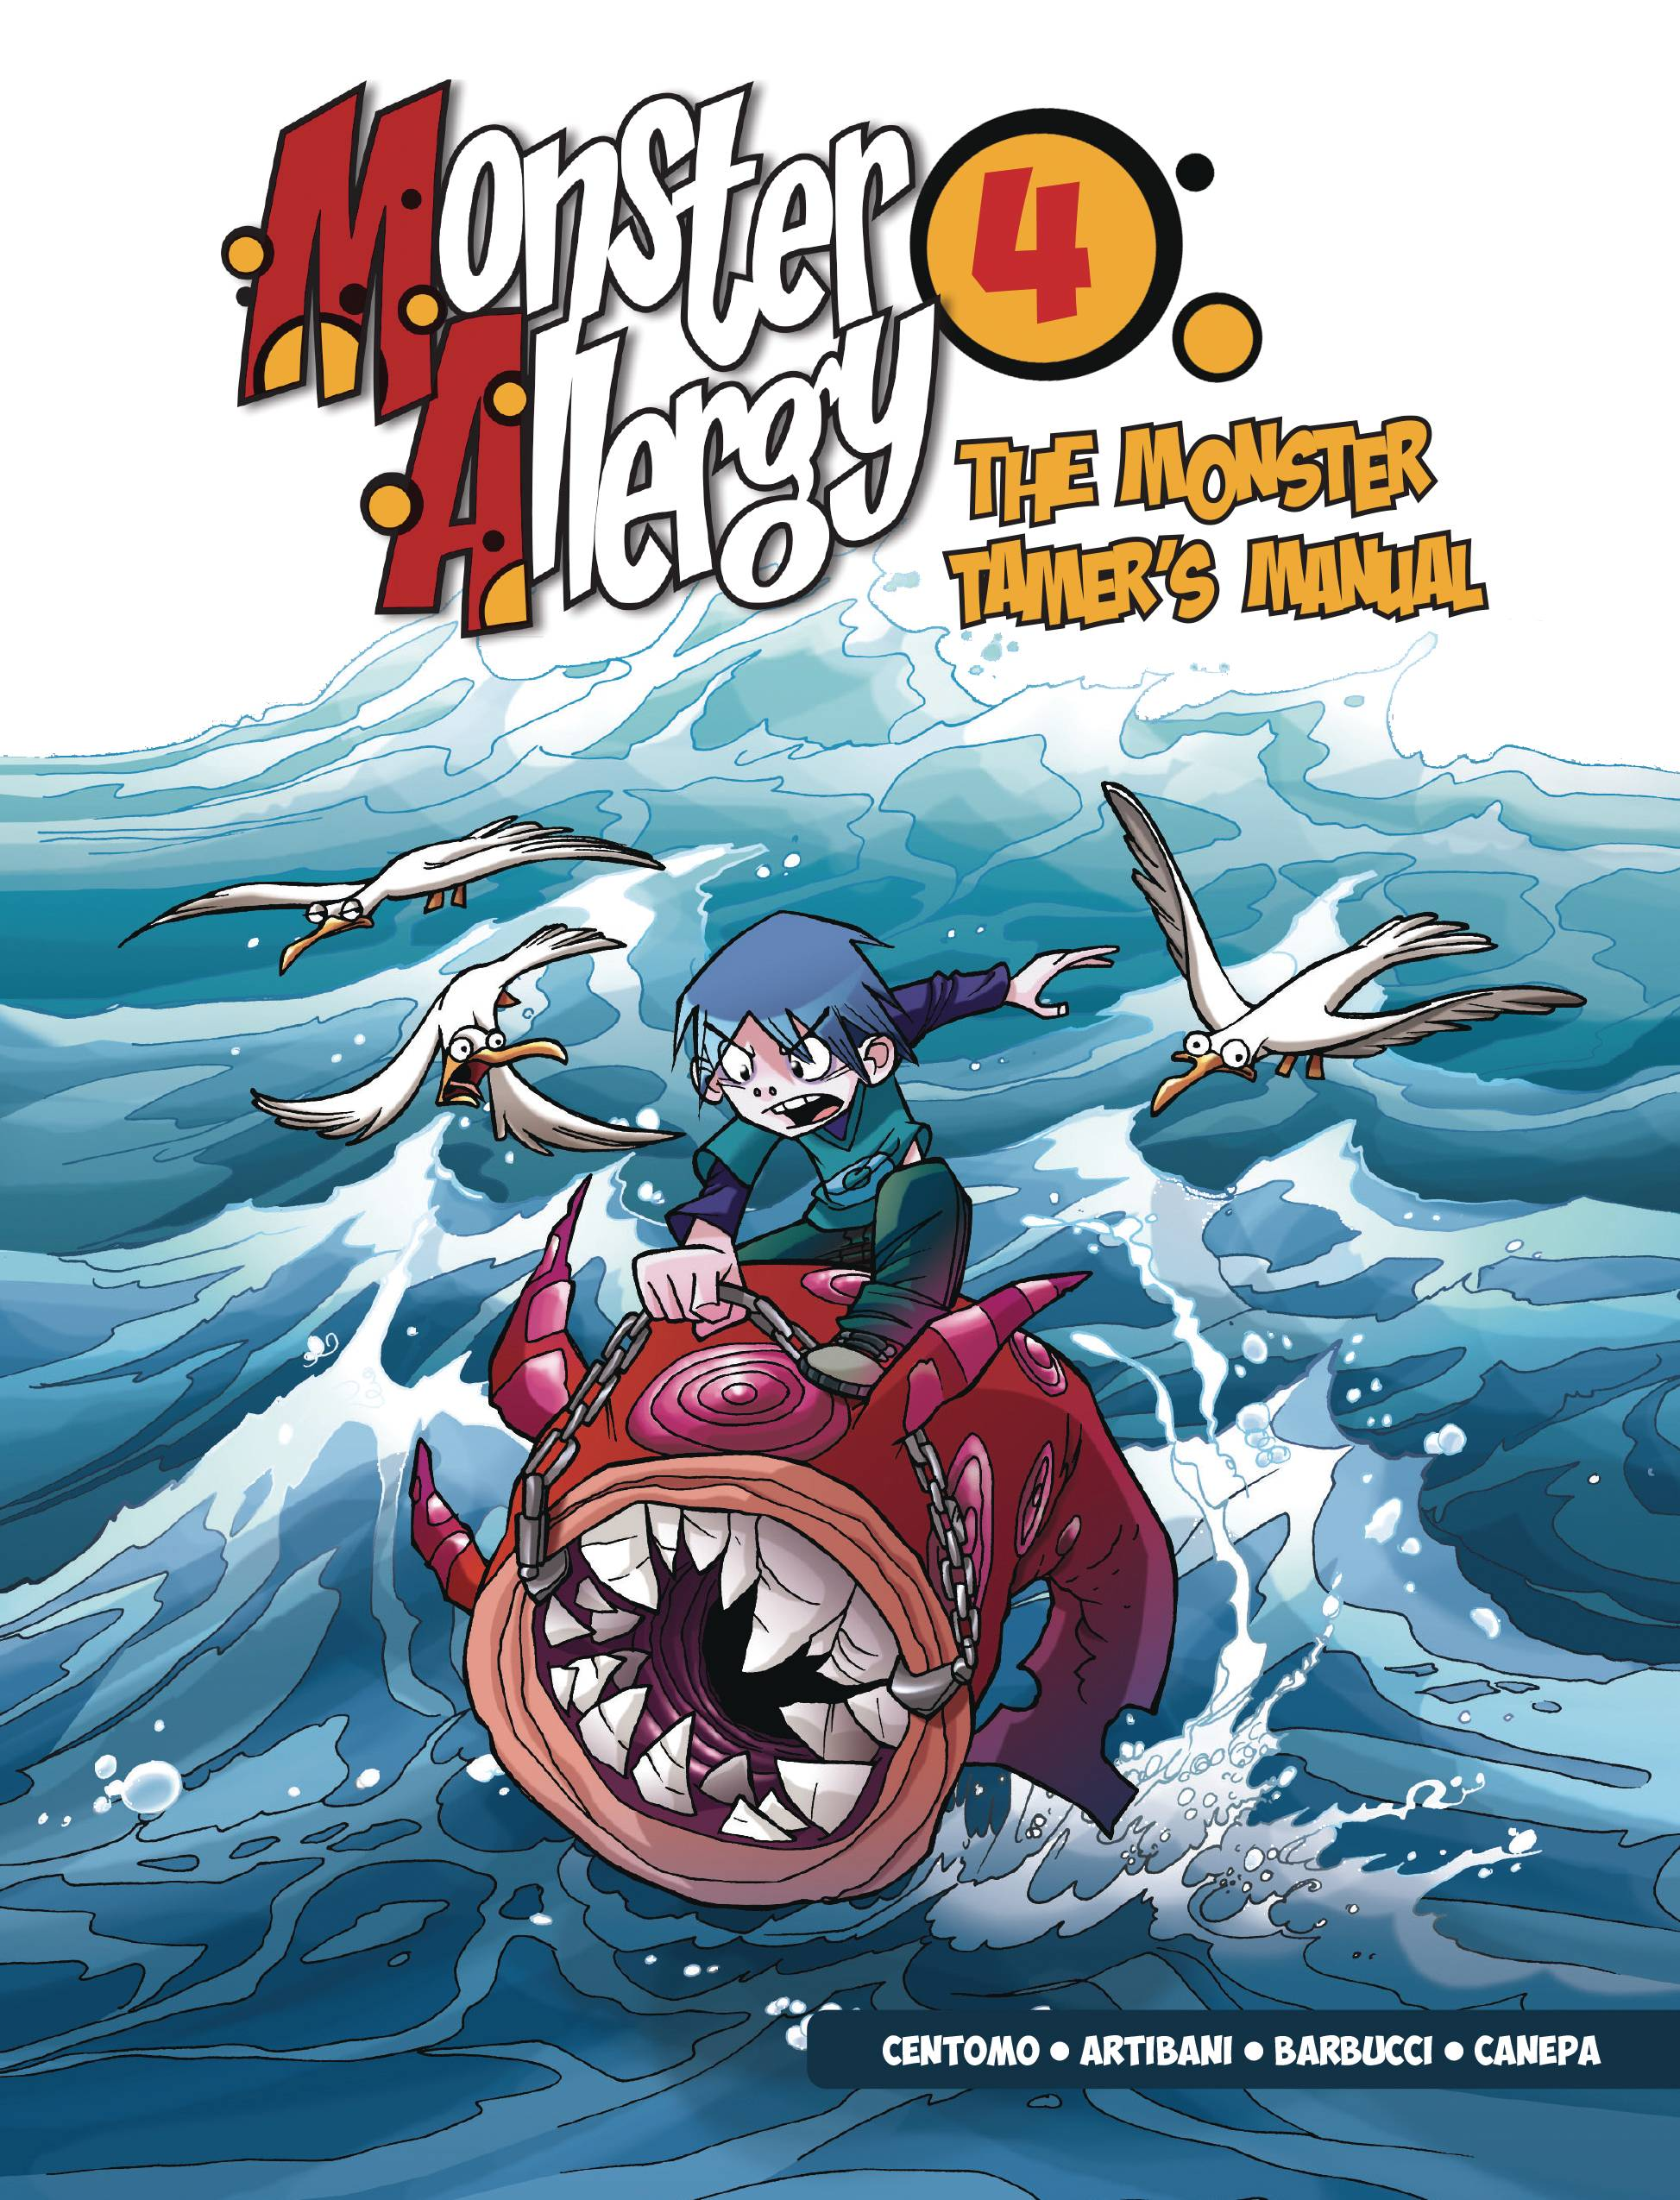 MONSTER ALLERGY GN VOL 04 MONSTER TAMERS MANUAL